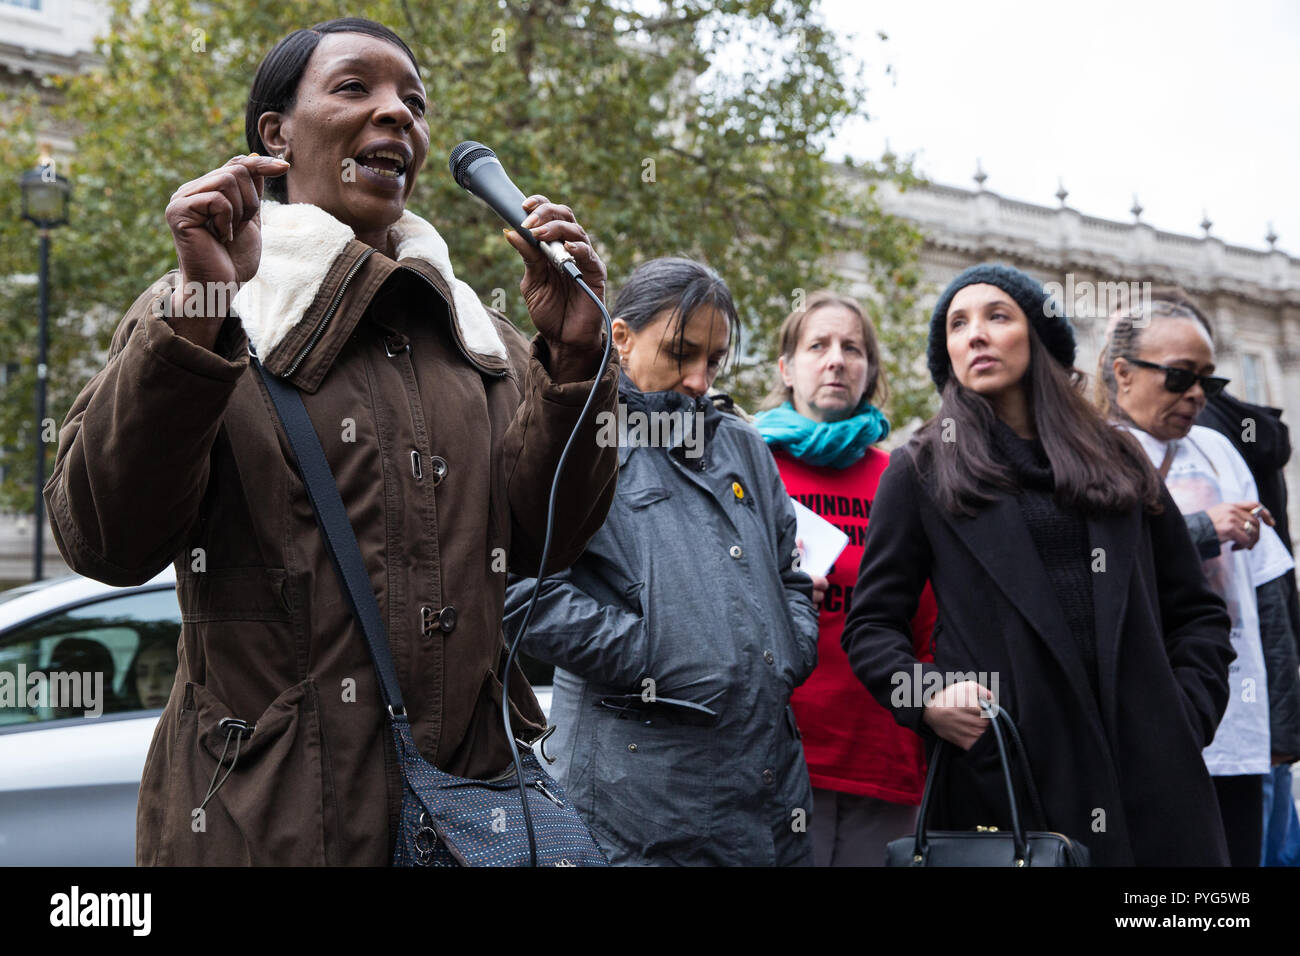 London, UK. 27th October, 2018. Marilyn Reed, mother of Sarah Reed, addresses campaigners from the United Families and Friends Campaign (UFFC) taking part in the 20th annual procession to Downing Street in remembrance of family members and friends who died in police custody, prison, immigration detention or secure psychiatric hospitals. Sarah Reed, 32, was found dead in a cell at Holloway prison on 11th January 2016. Credit: Mark Kerrison/Alamy Live News - Stock Image